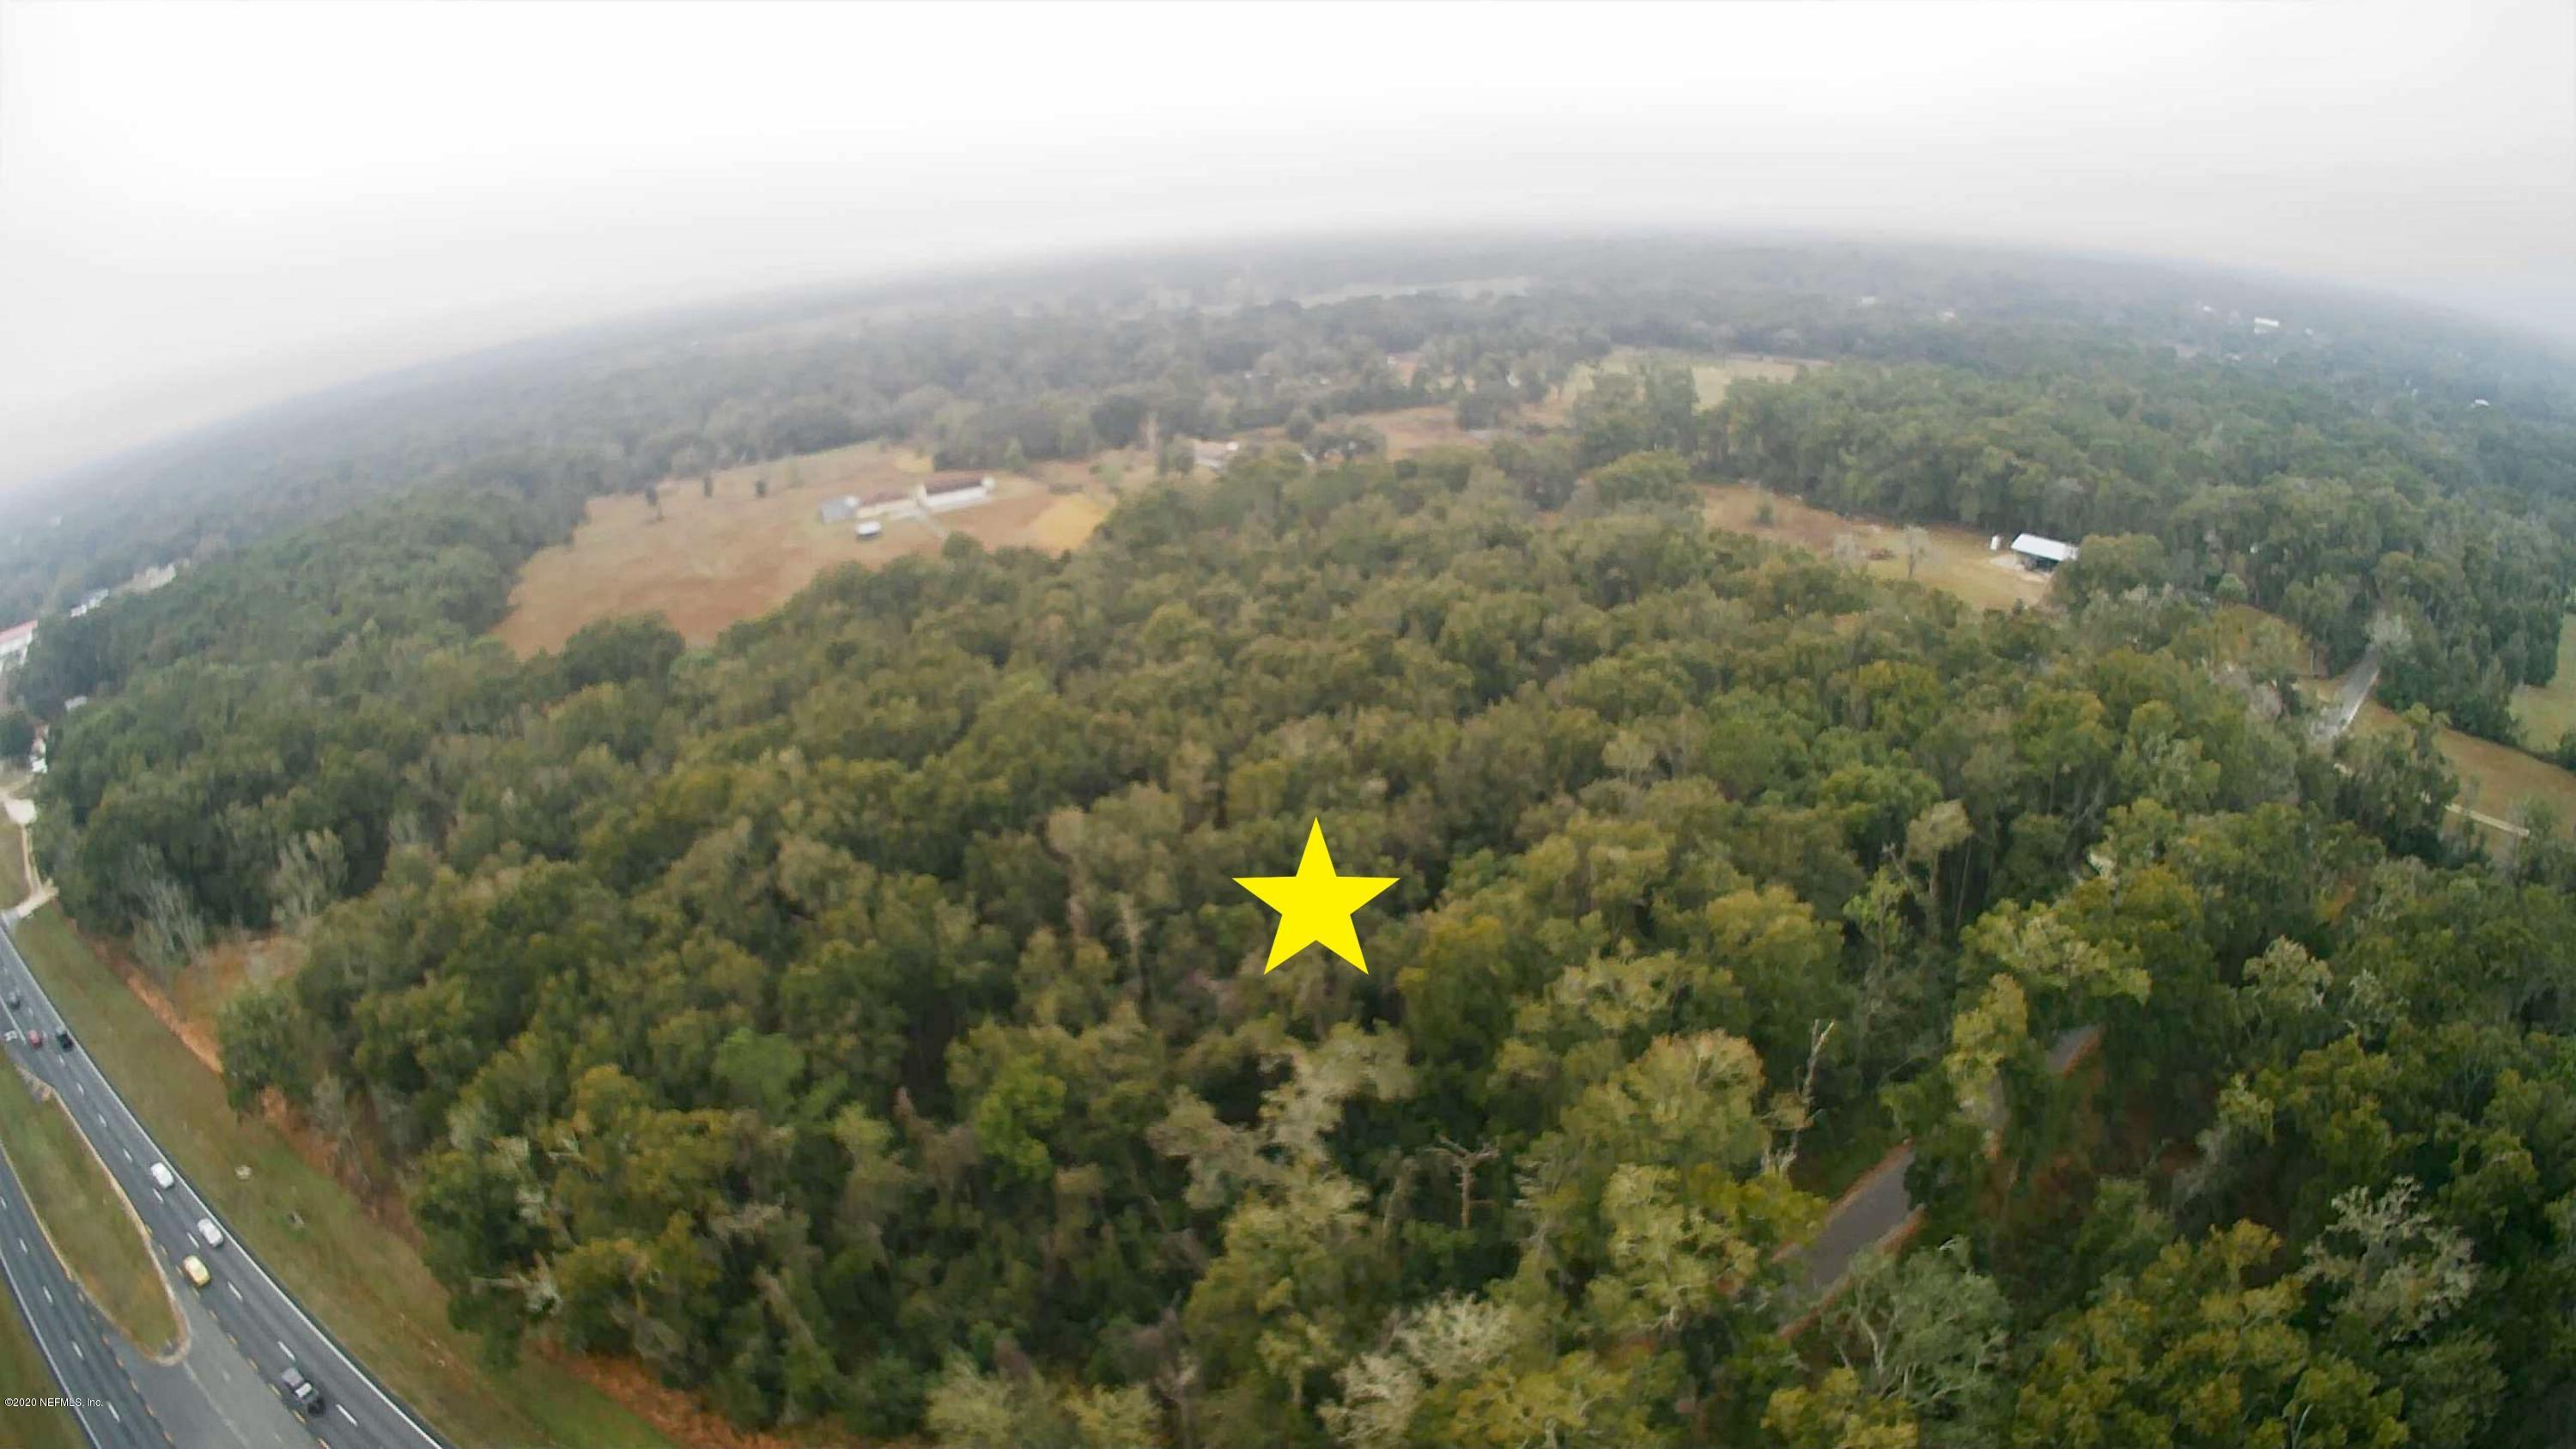 0000 US HIGHWAY 441/27, BELLEVIEW, FLORIDA 34420, ,Commercial,For sale,US HIGHWAY 441/27,1036147